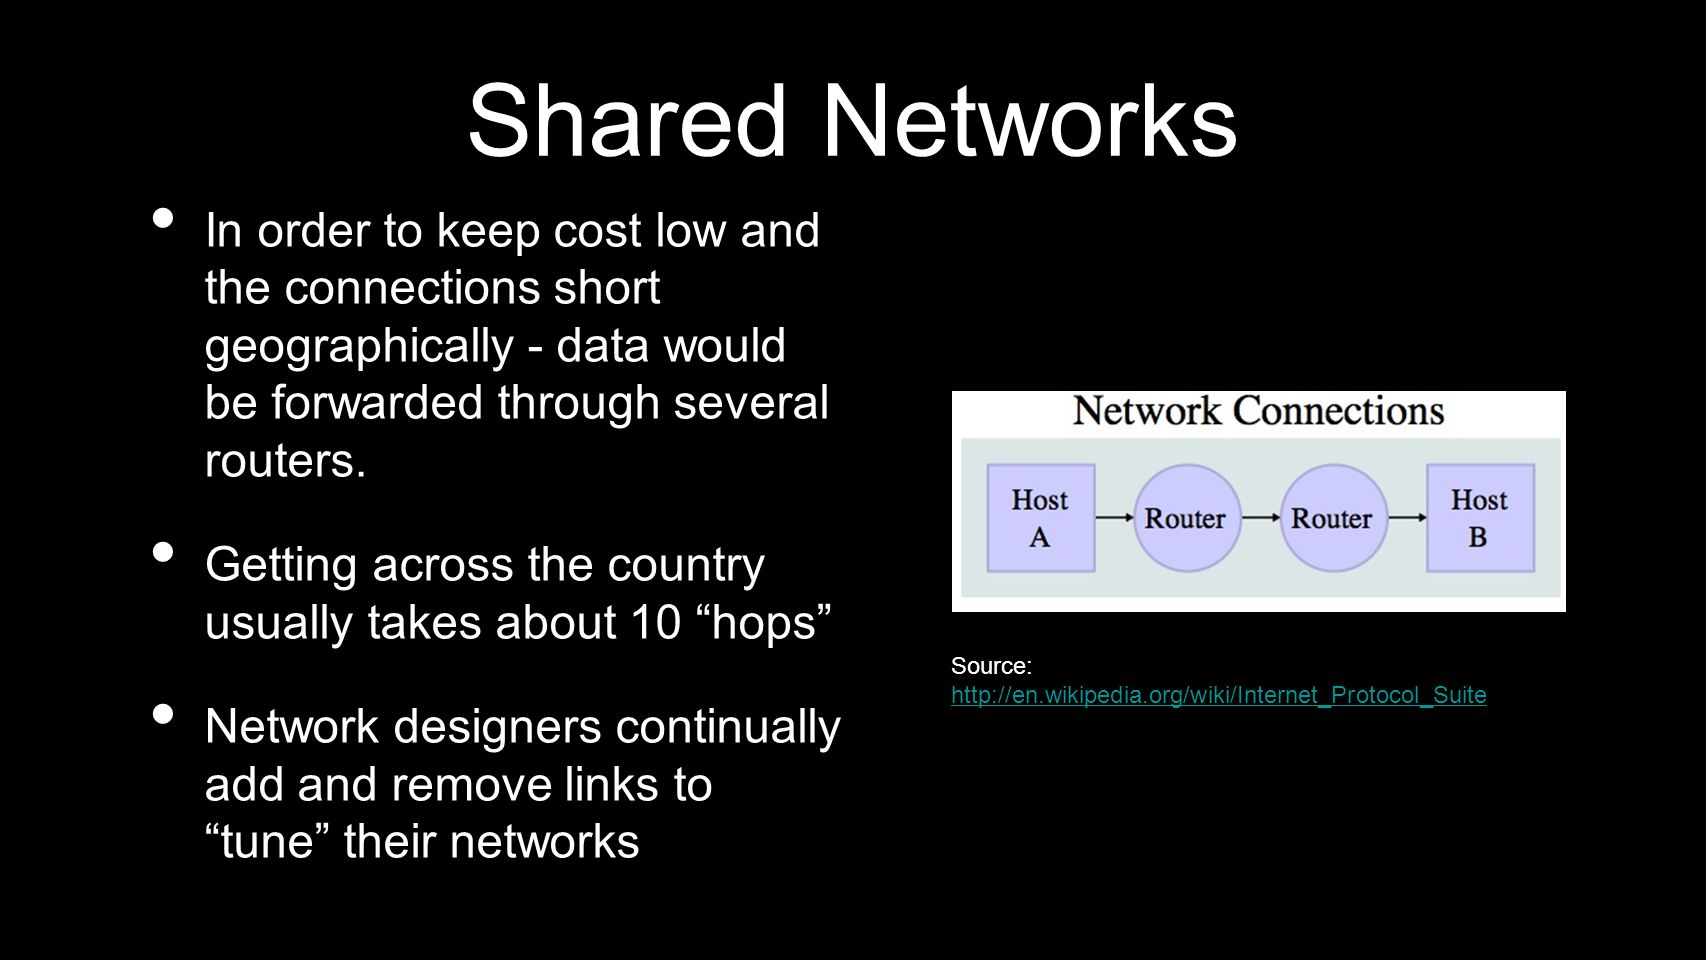 Shared Networks In order to keep cost low and the connections short geographically - data would be forwarded through several routers. Getting across t